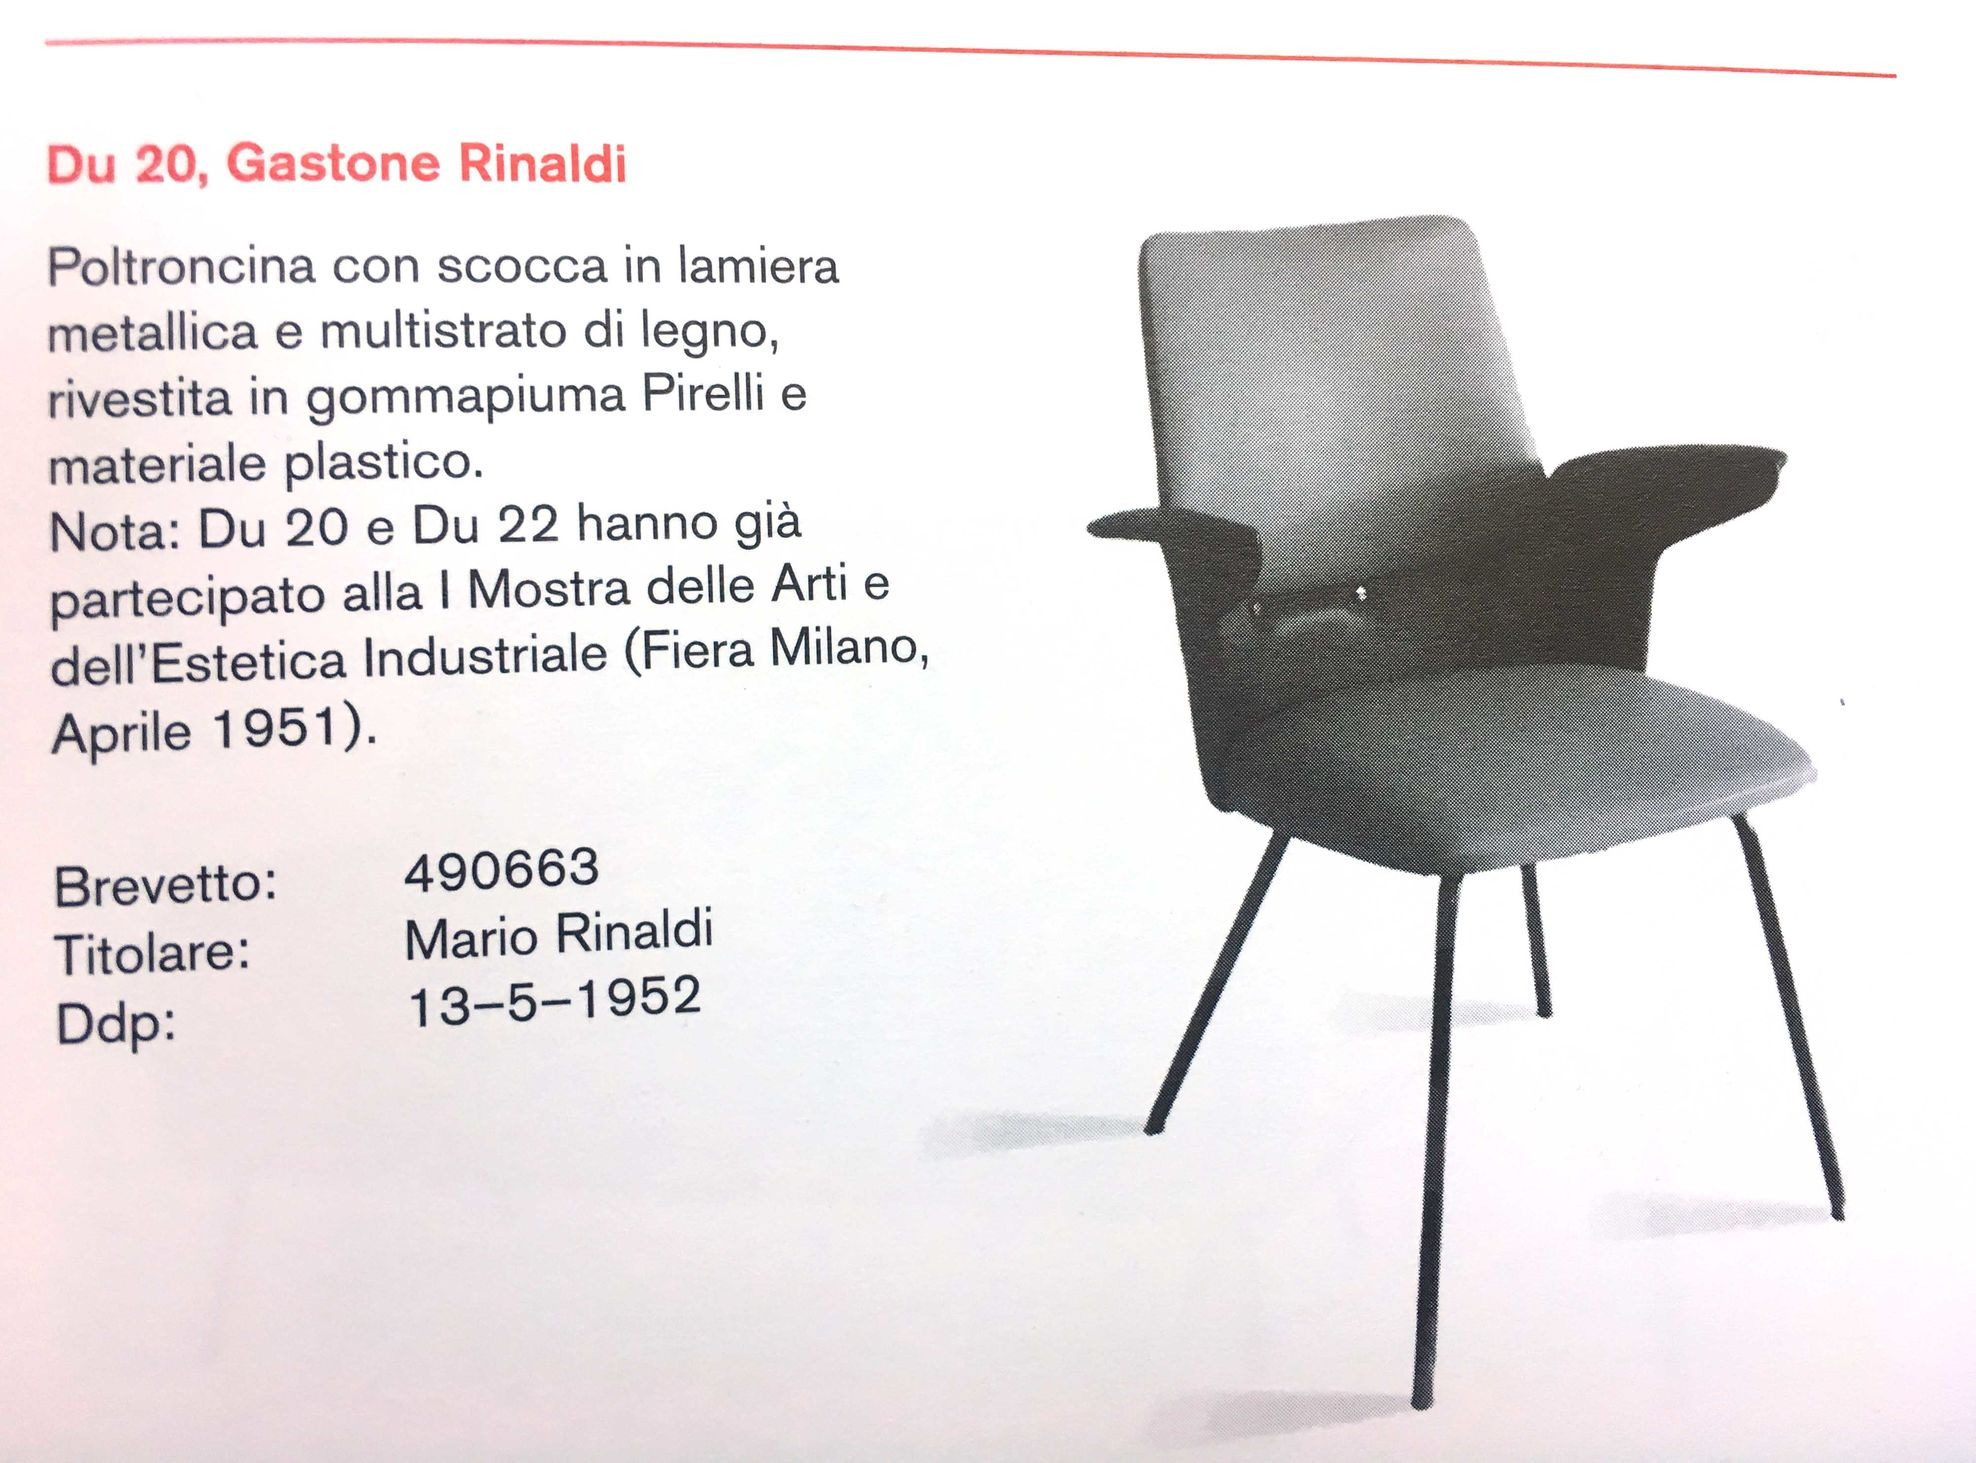 [Translate to en:] Gastone Rinaldi DU 20 Rima